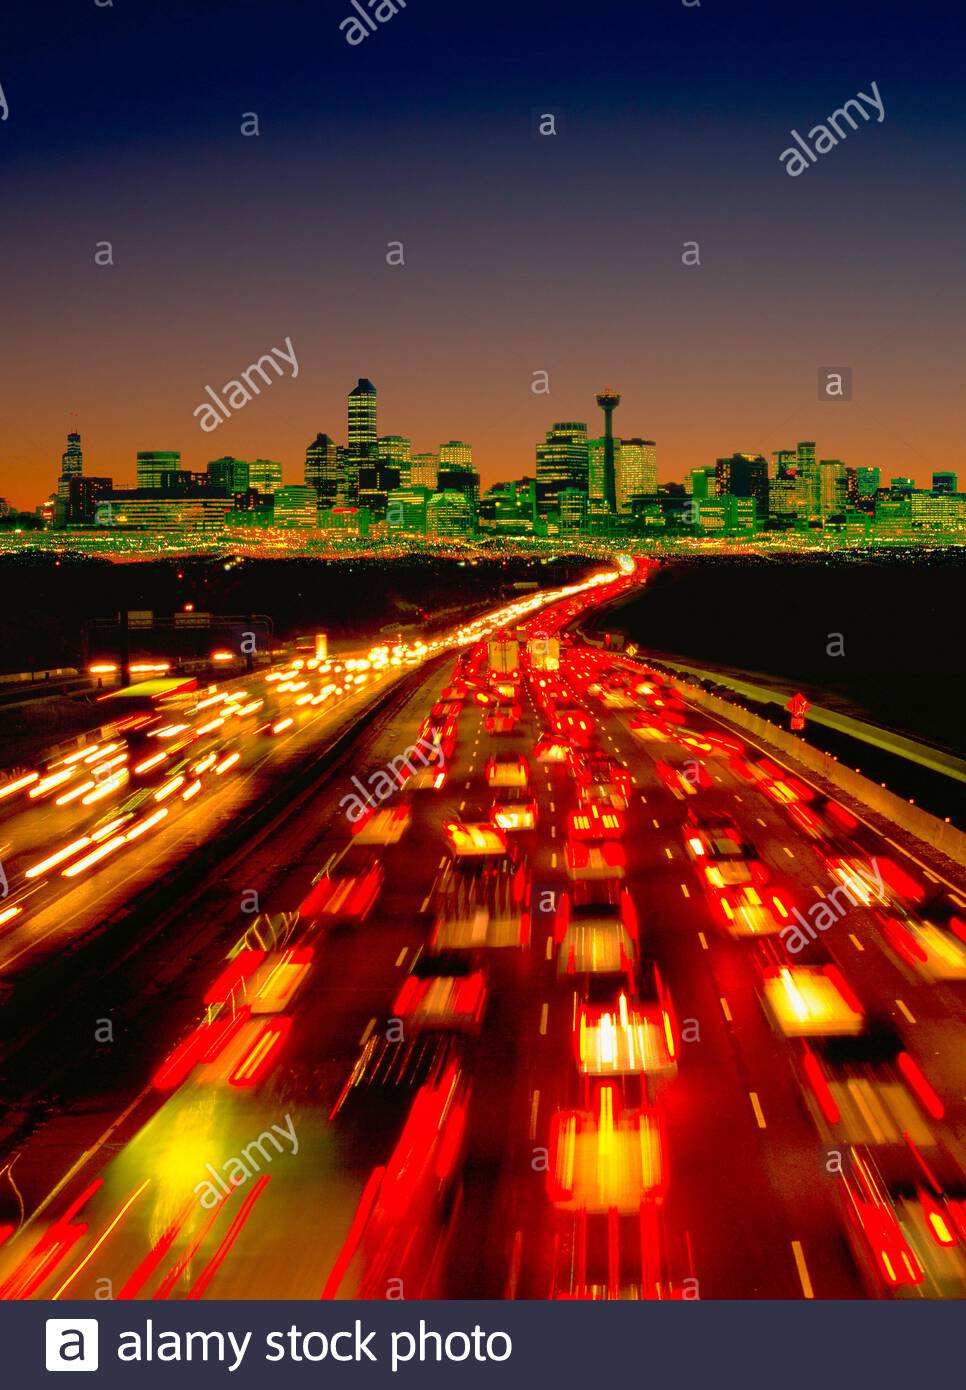 energy-consumption-by-commuter-traffic-c